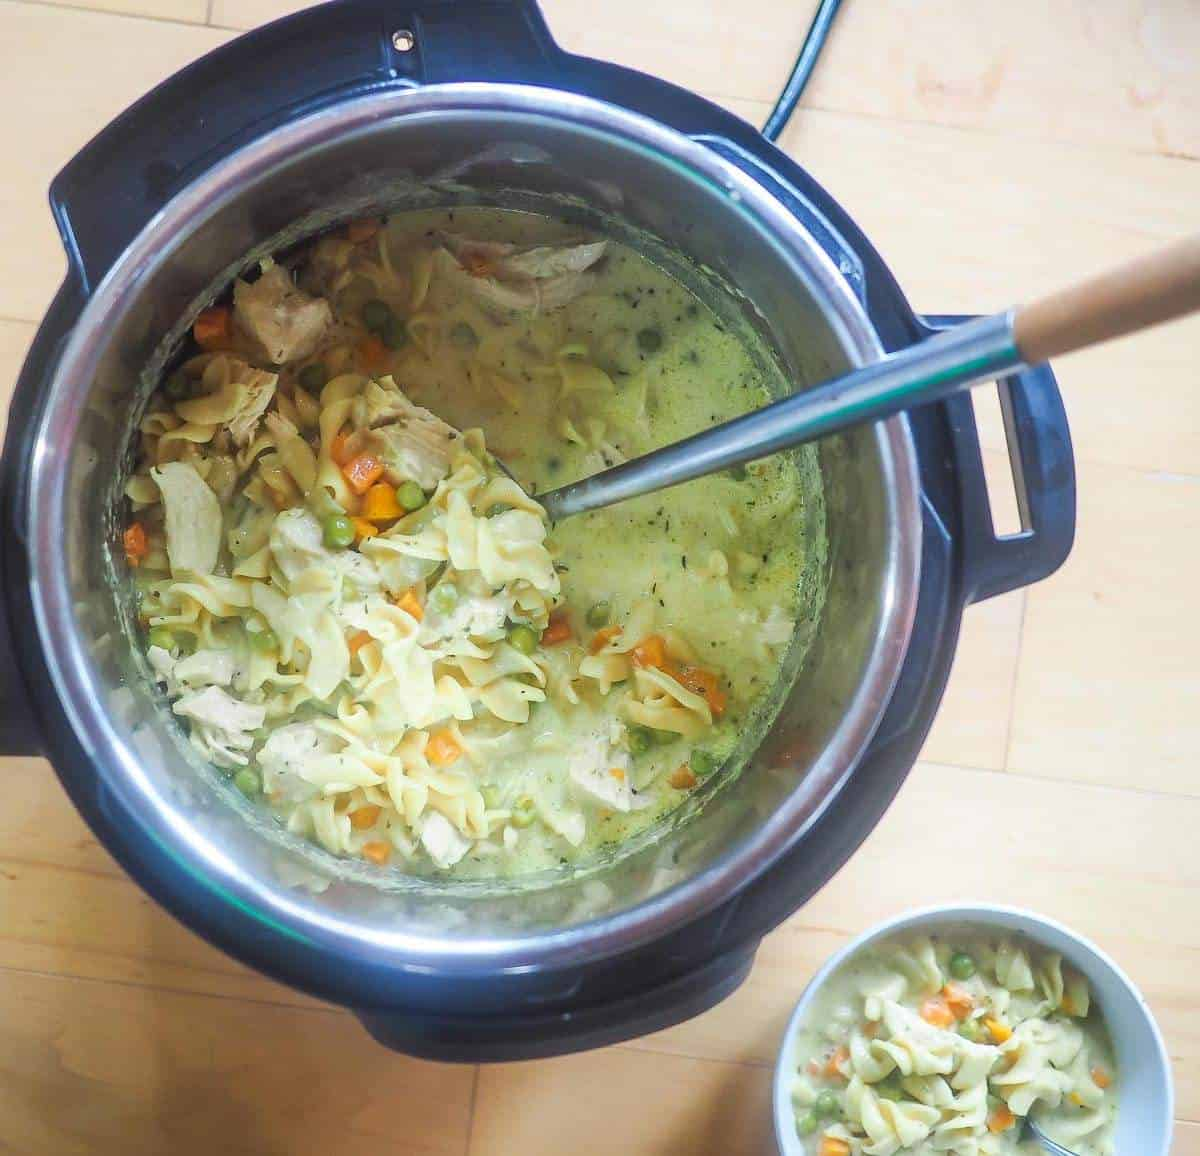 An instant pot of chicken pot pie soup and a small bowl next to it.